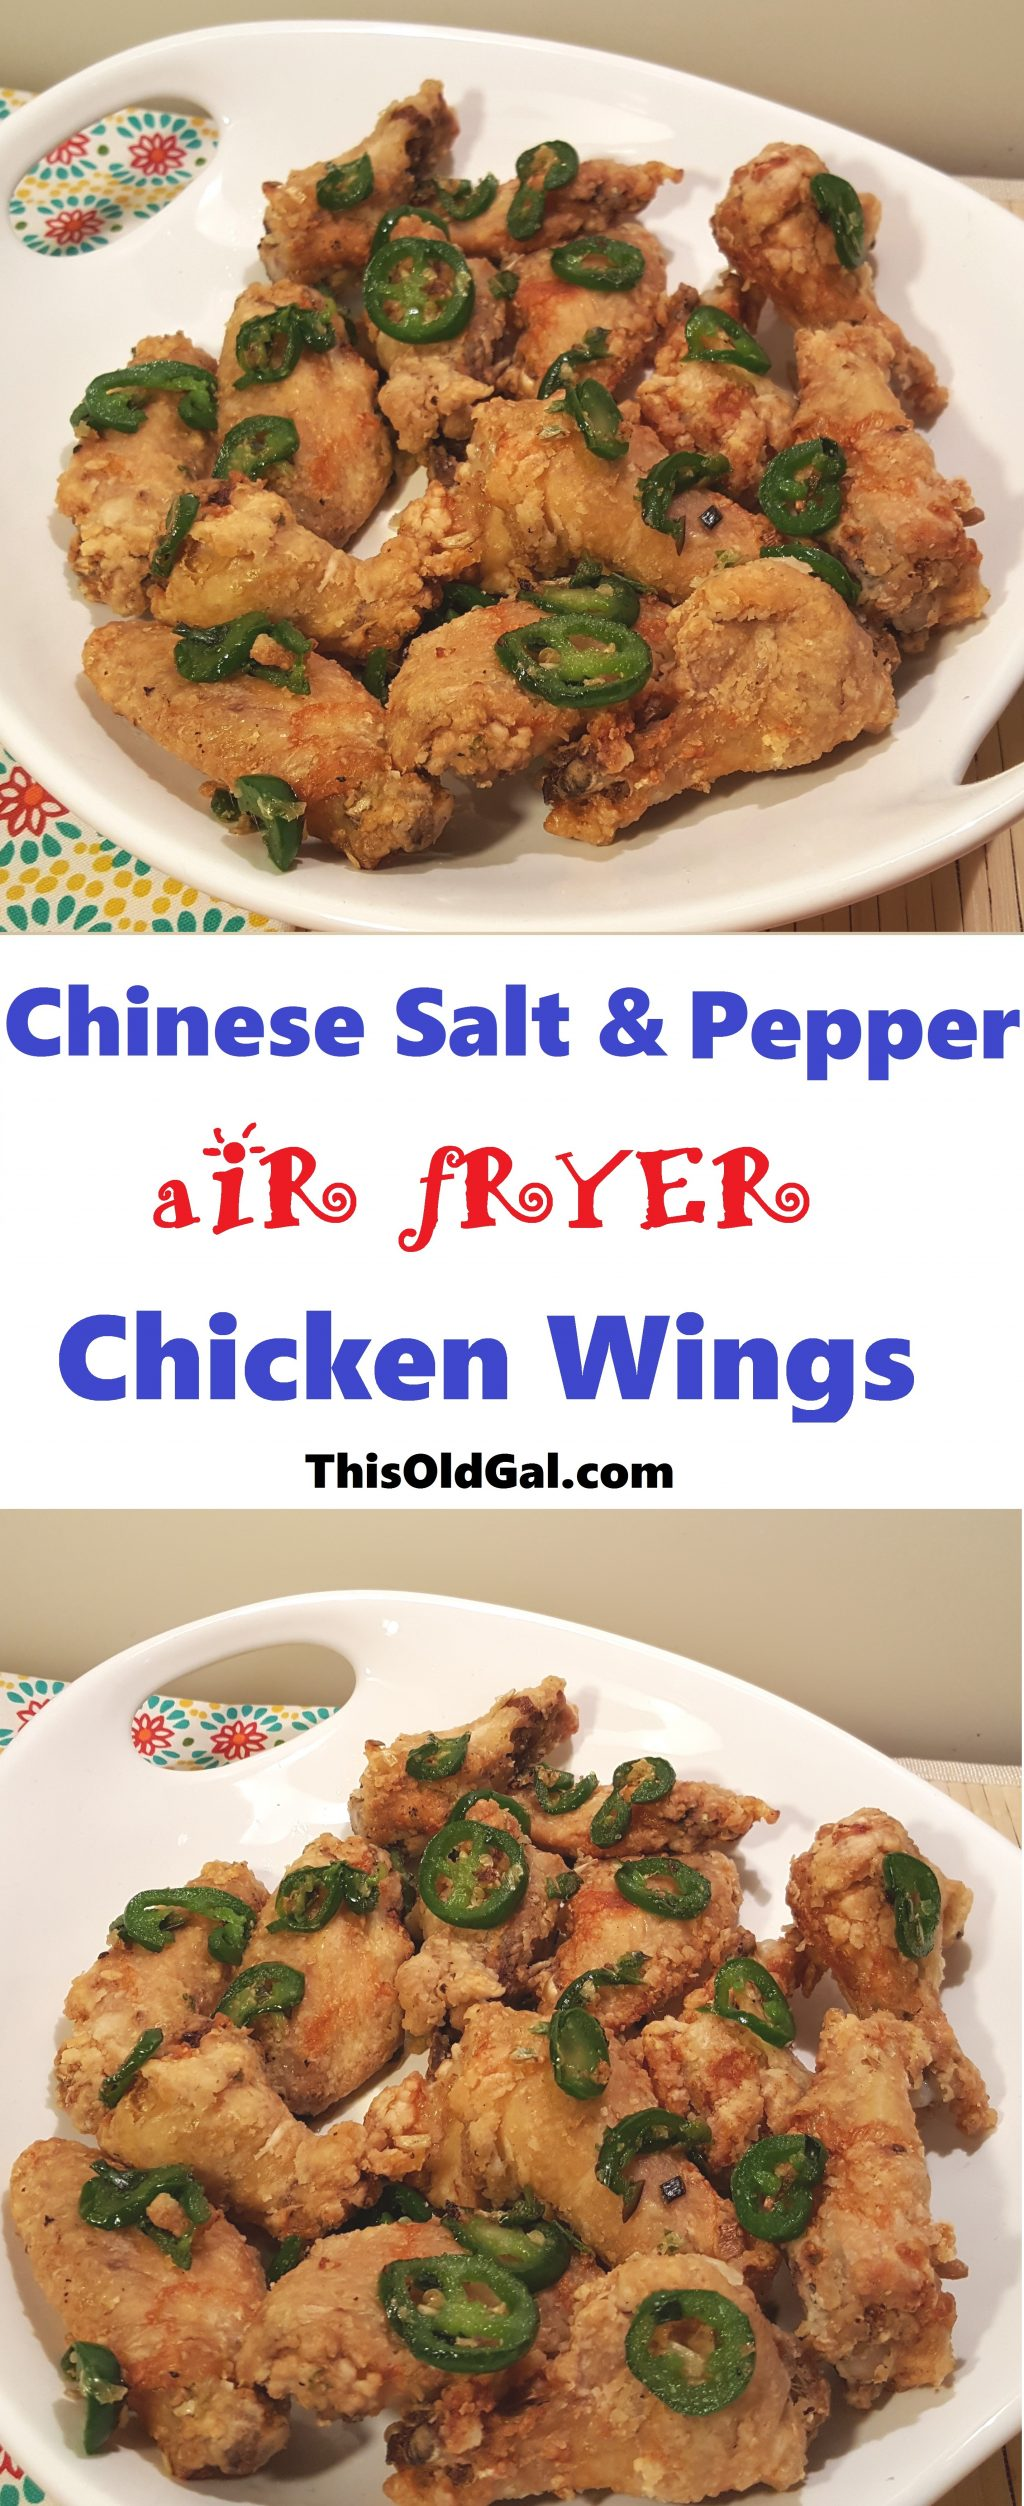 Air Fryer Chinese Salt Amp Pepper Chicken Wings This Old Gal